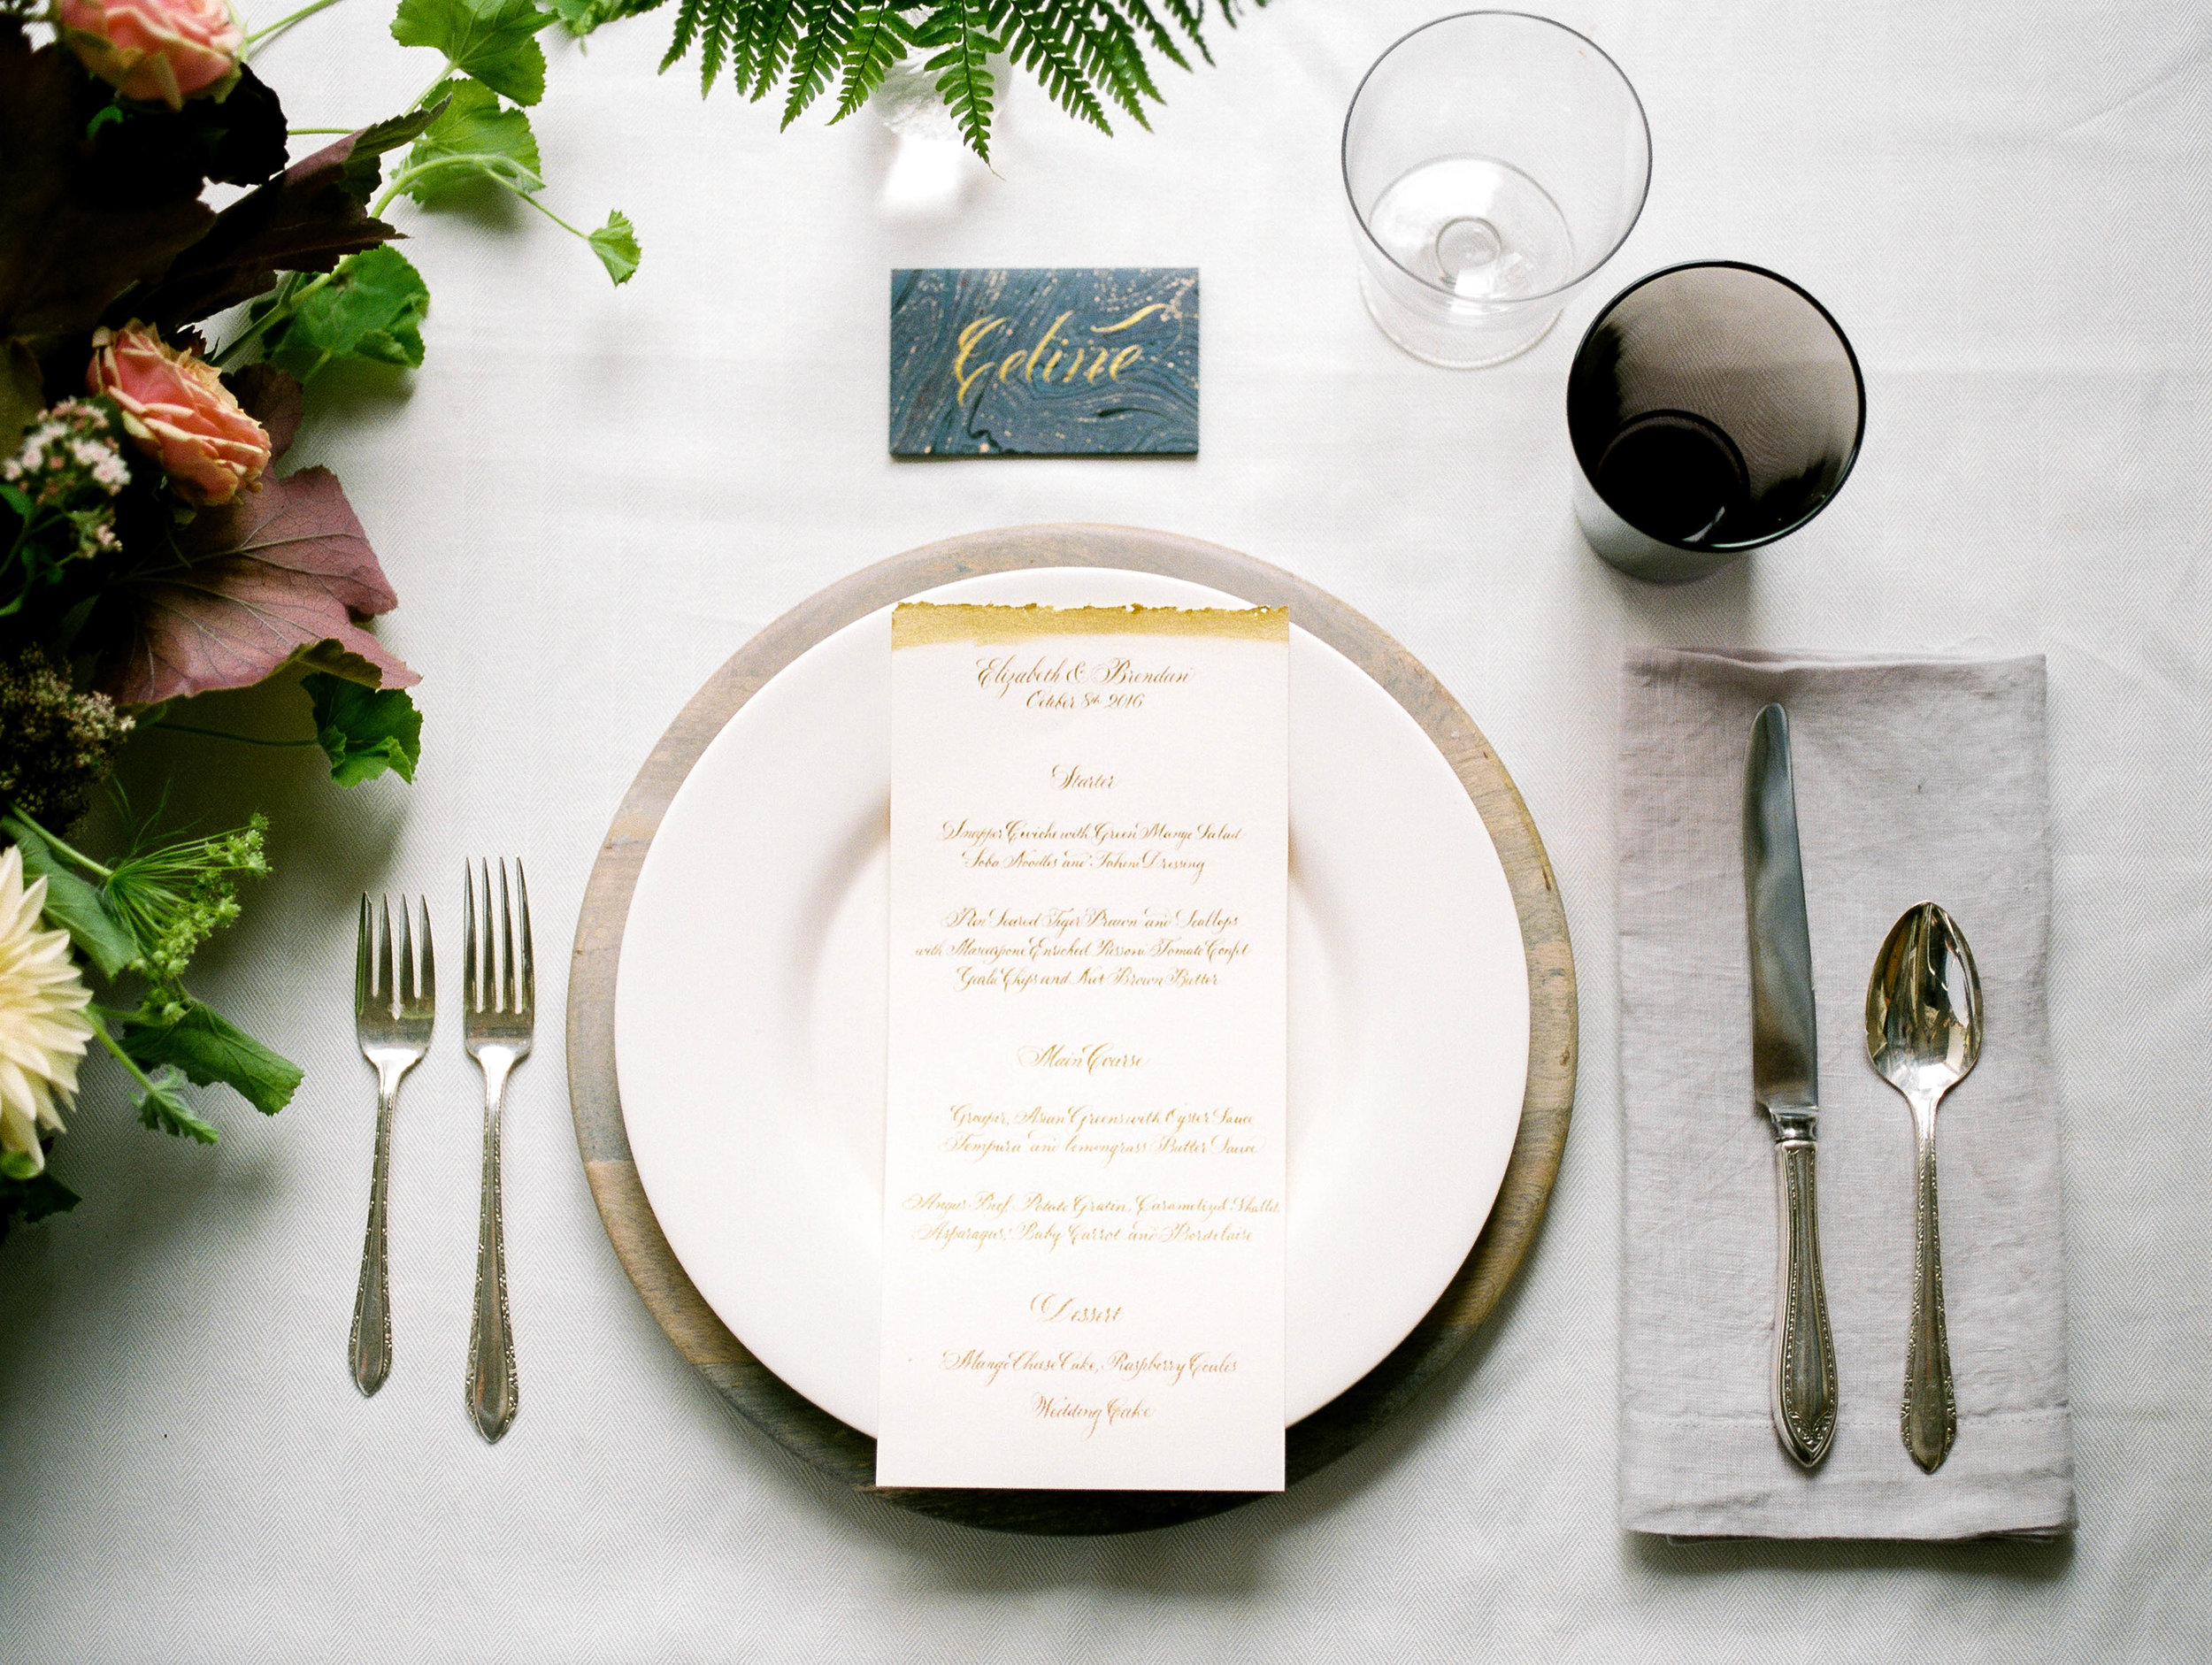 Calligraphy wedding place card and menu by Chavelli www.chavelli.com | Photo by  Jessica Rieke